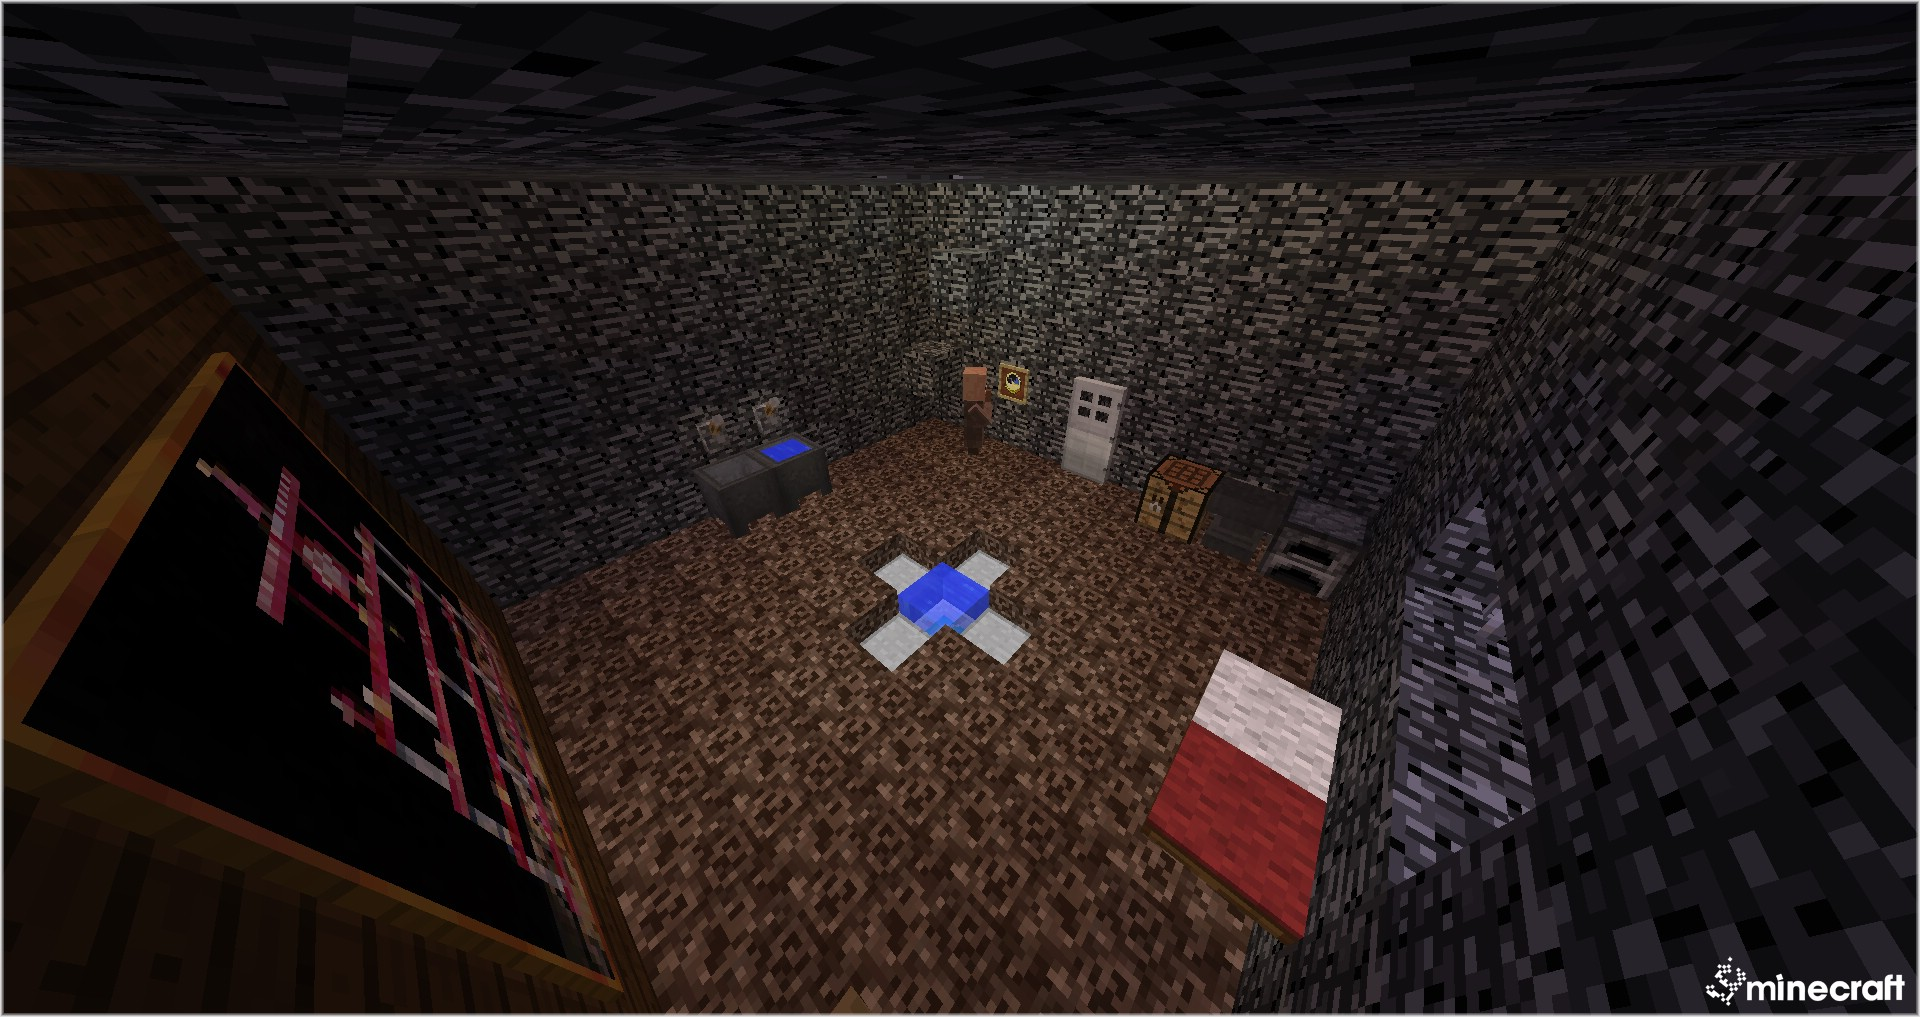 http://minecraft-forum.net/wp-content/uploads/2013/12/f7085__Bedrock-Prison-Escape-Map-3.jpg